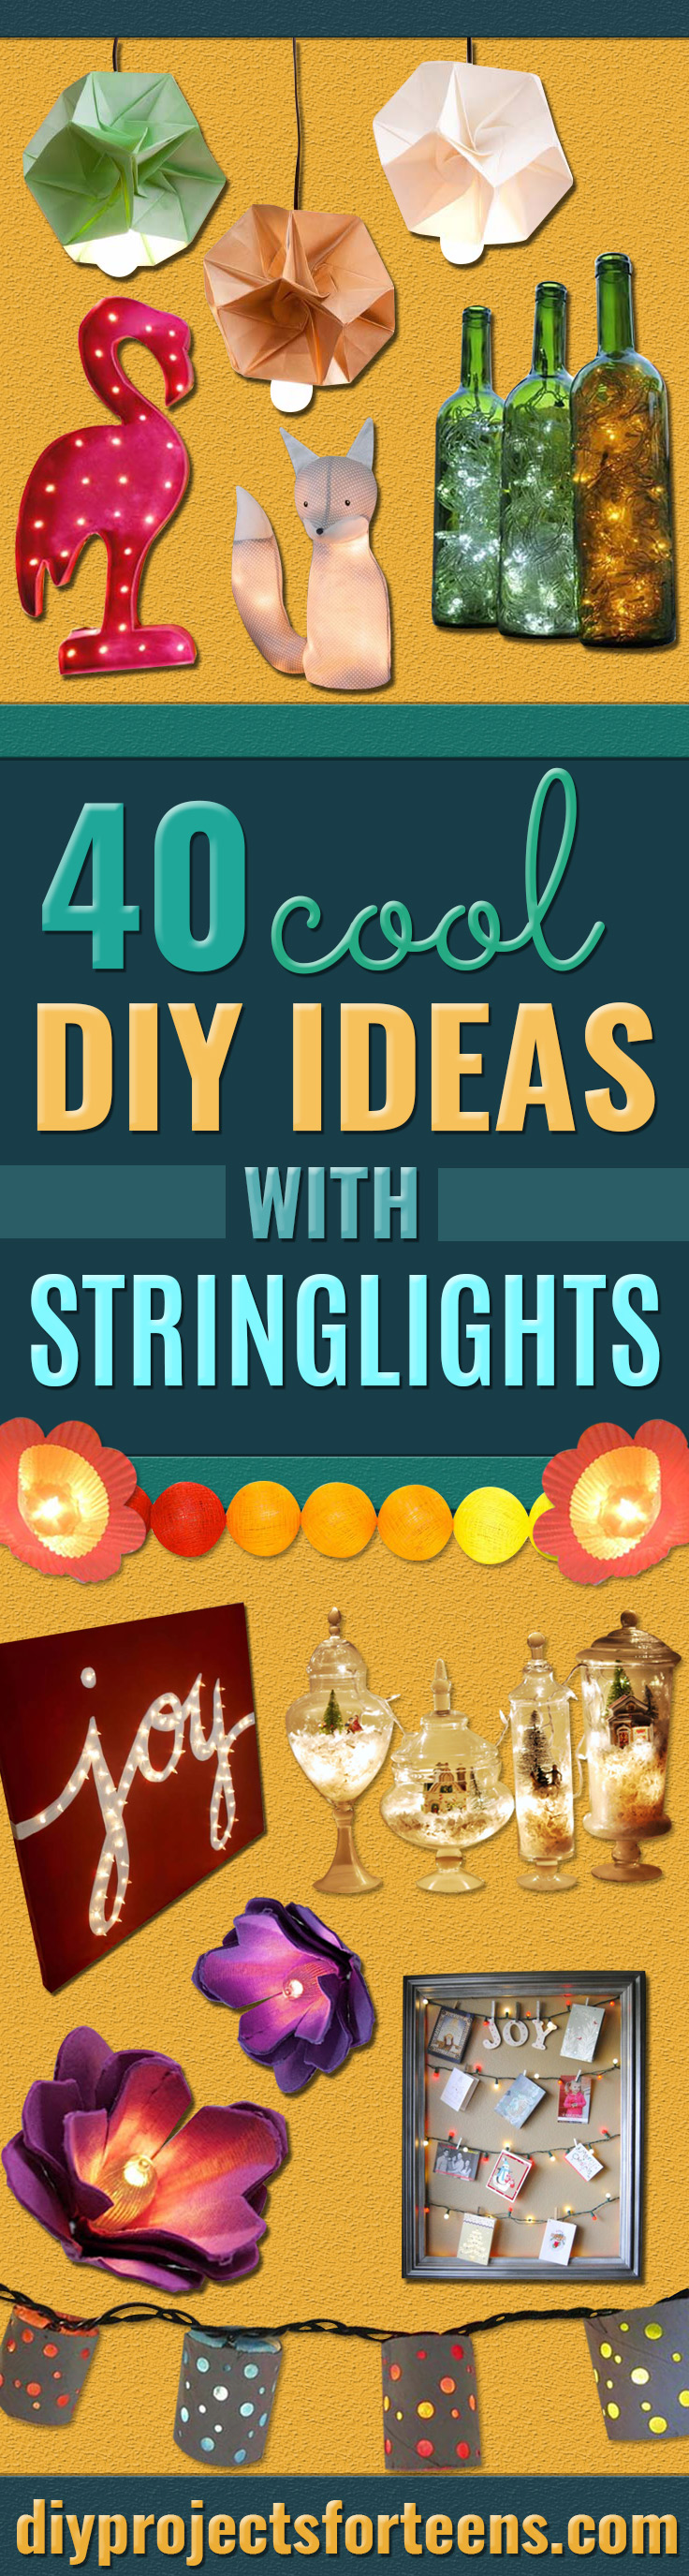 Cool Ways To Use Christmas Lights -Best Easy DIY Ideas for String Lights for Room Decoration, Home Decor and Creative DIY Bedroom Lighting - Creative Christmas Light Tutorials with Step by Step Instructions - Creative Crafts and DIY Projects for Teens, Teenagers and Adults #diyideas #stringlights #diydecor #teencrafts